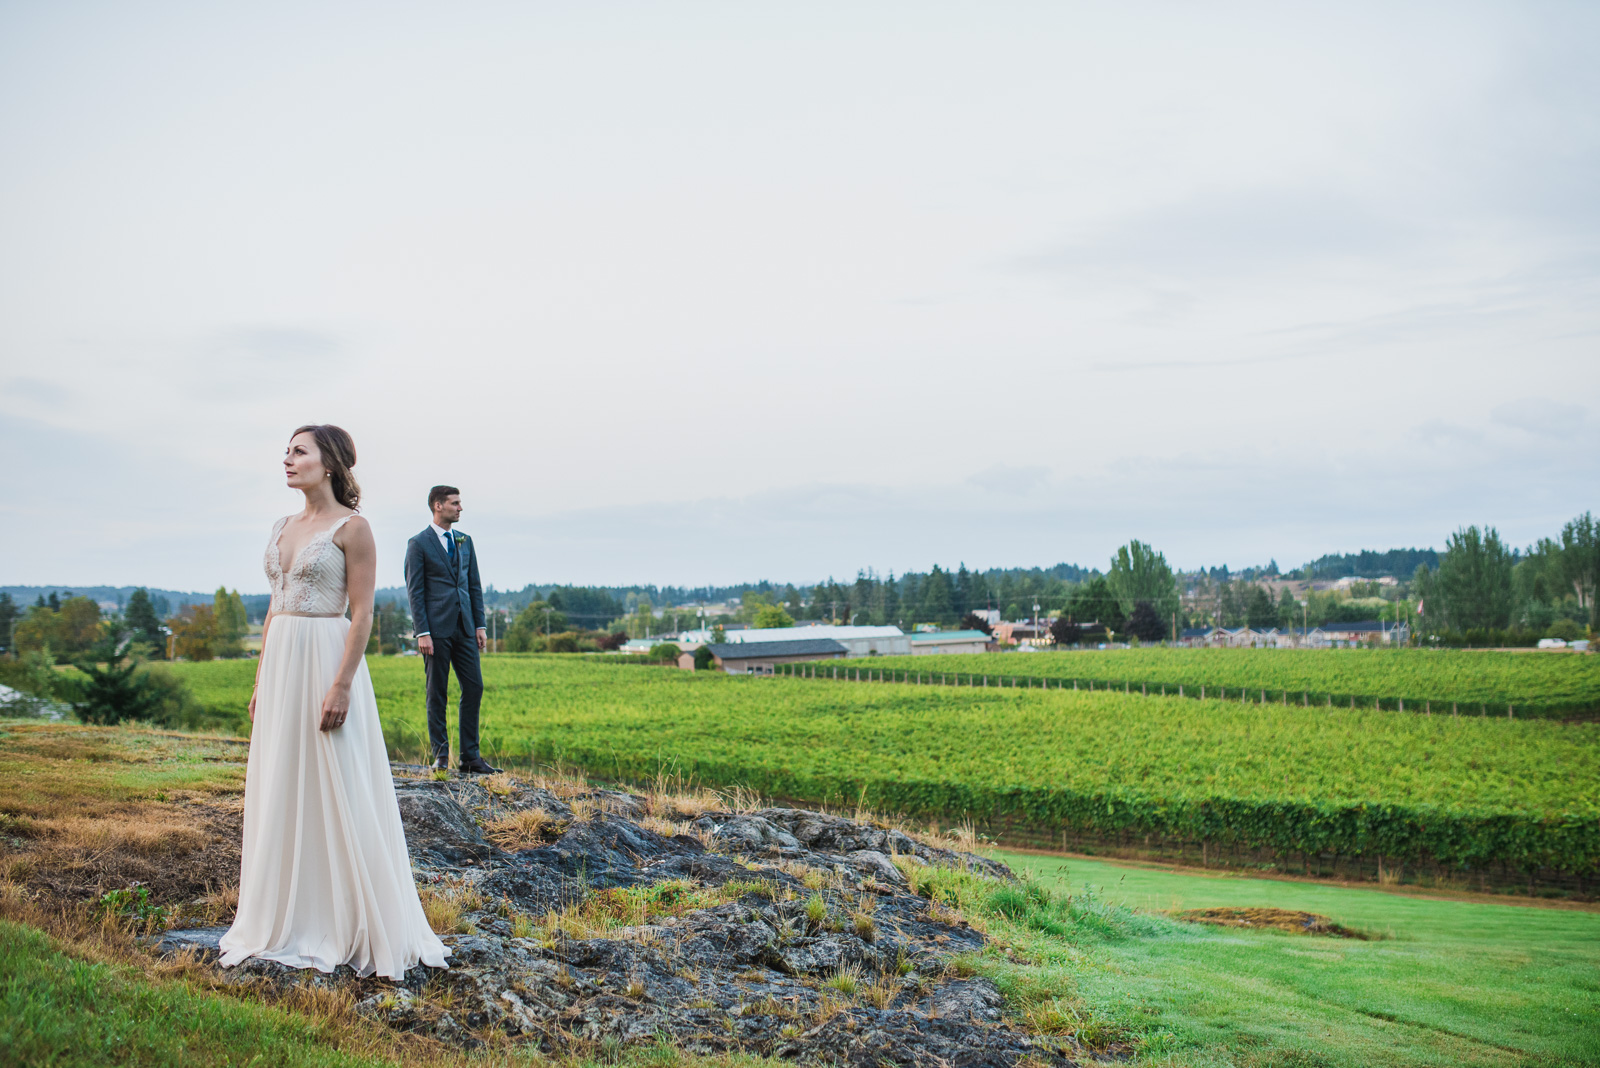 victoria-wedding-photographers-church-and-state-winery-wedding-47.jpg